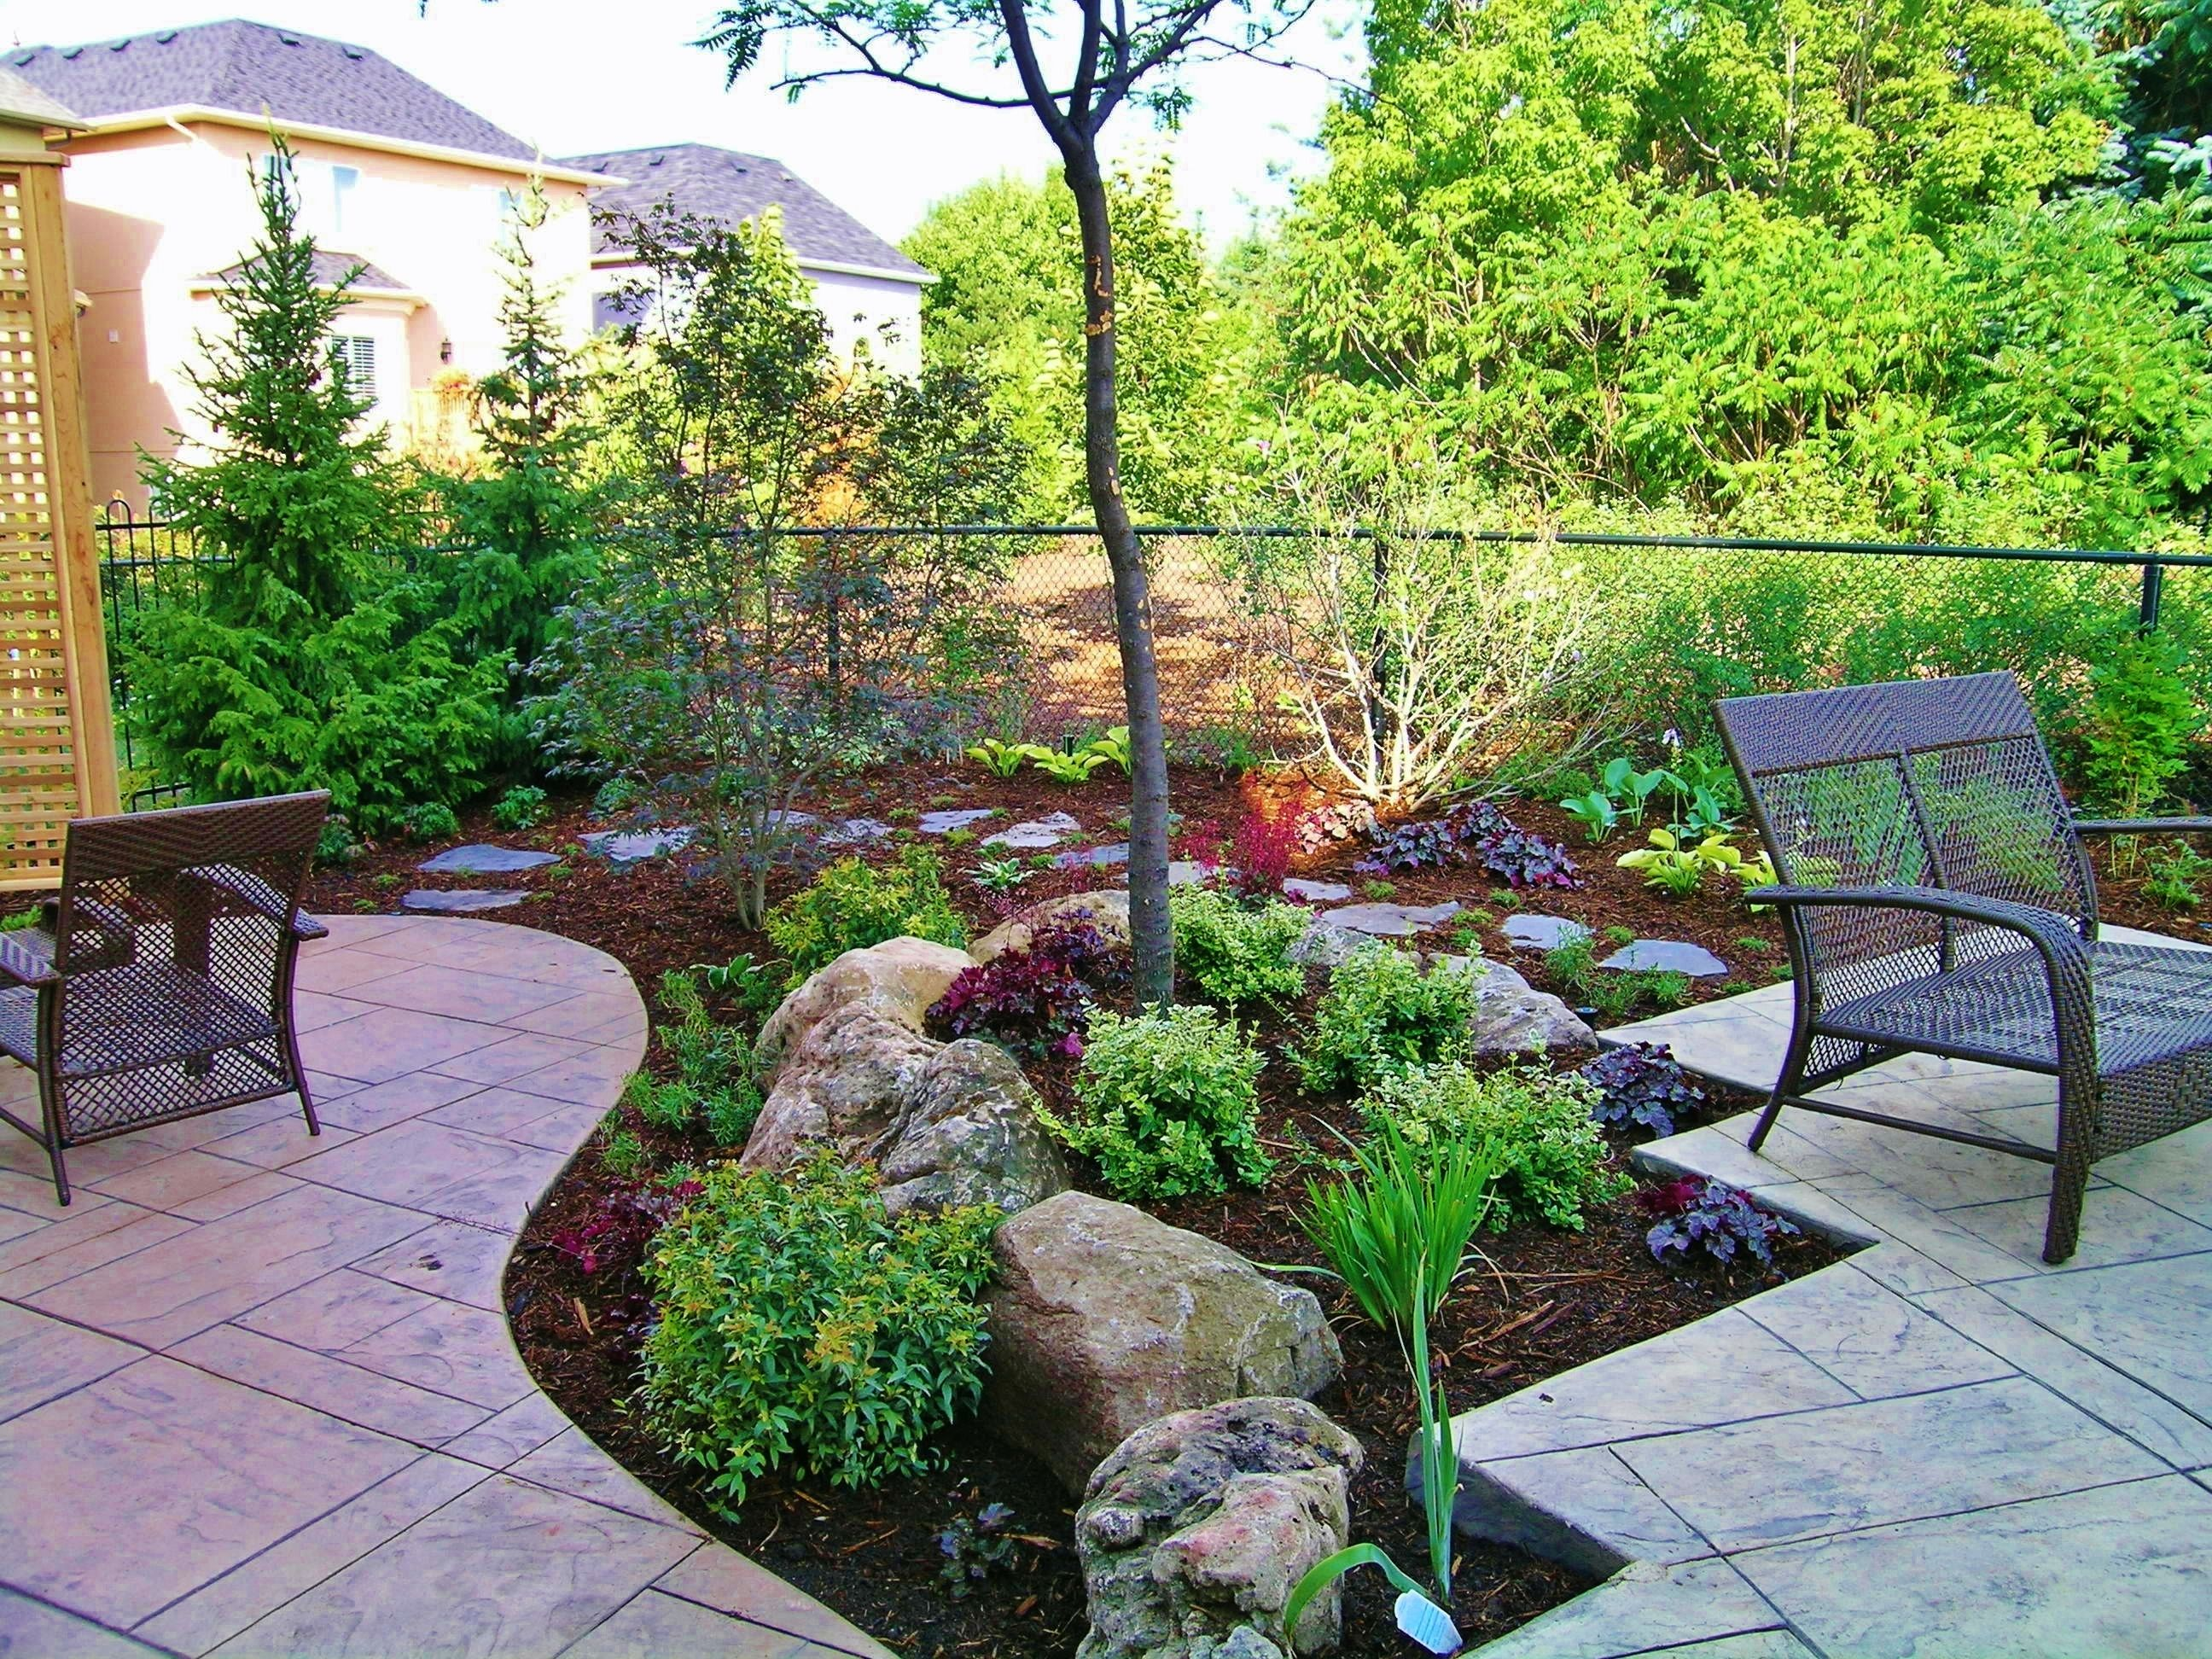 backyard landscaping backyard landscape design backyard ideas for kids